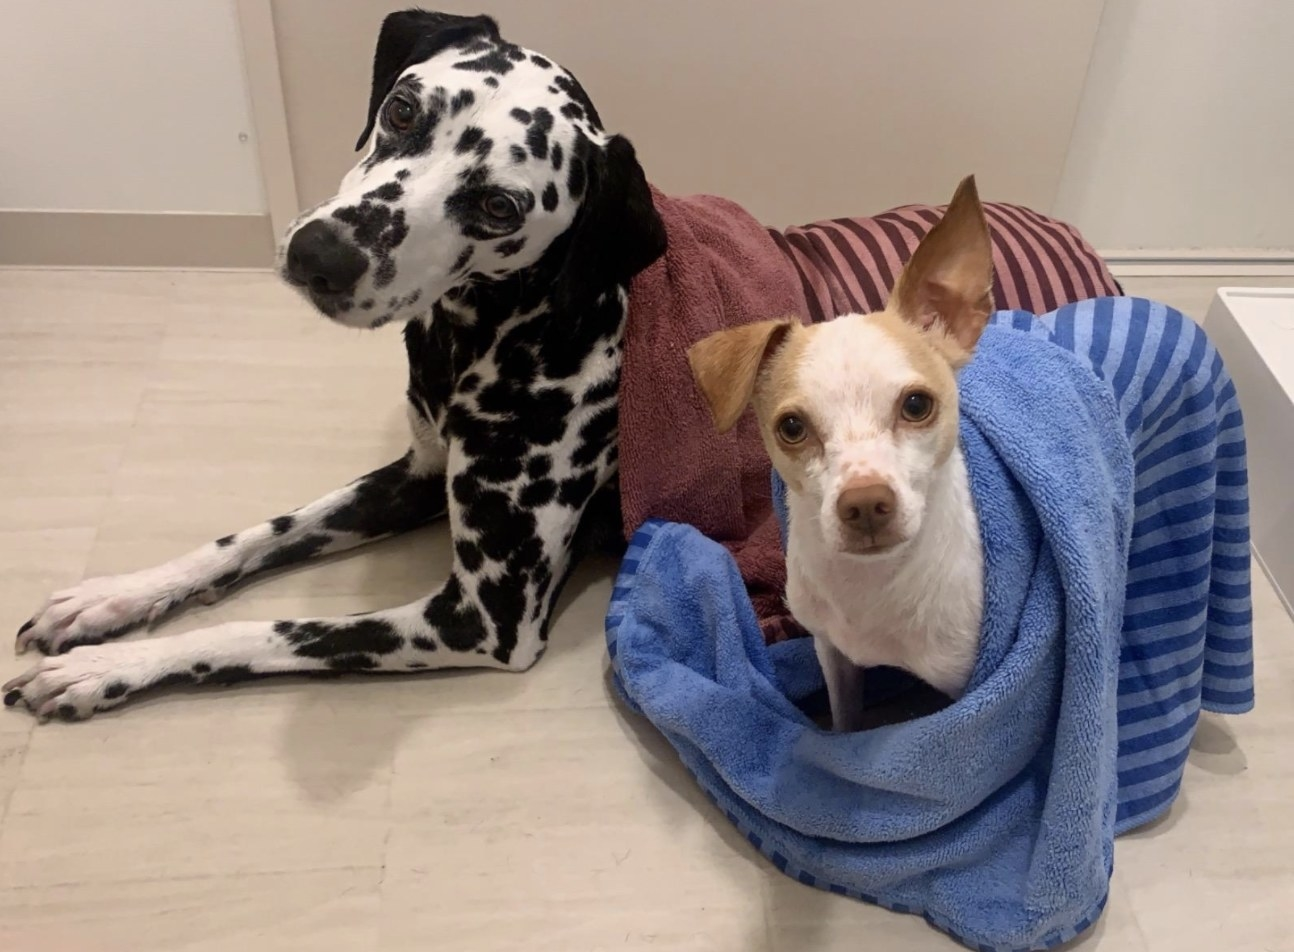 A small dog stands next to a Dalmation with towels on each of them after a bath